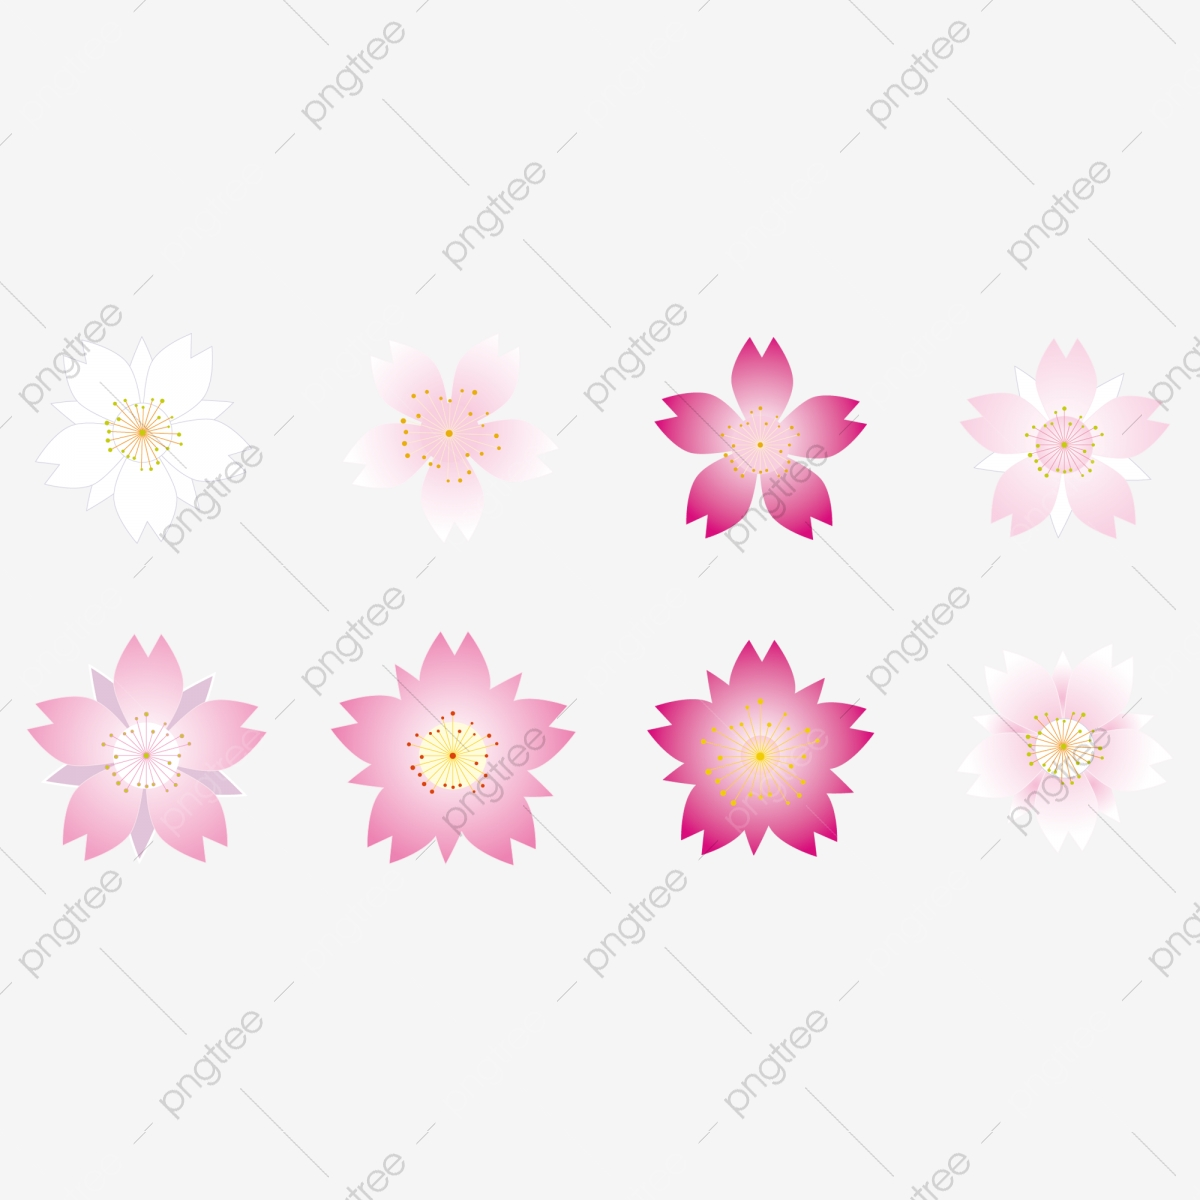 Pink Cherry Blossom Vector Cherry Blossom Cherry Blossom Vector Cherry Blossom Pink Png And Vector With Transparent Background For Free Download